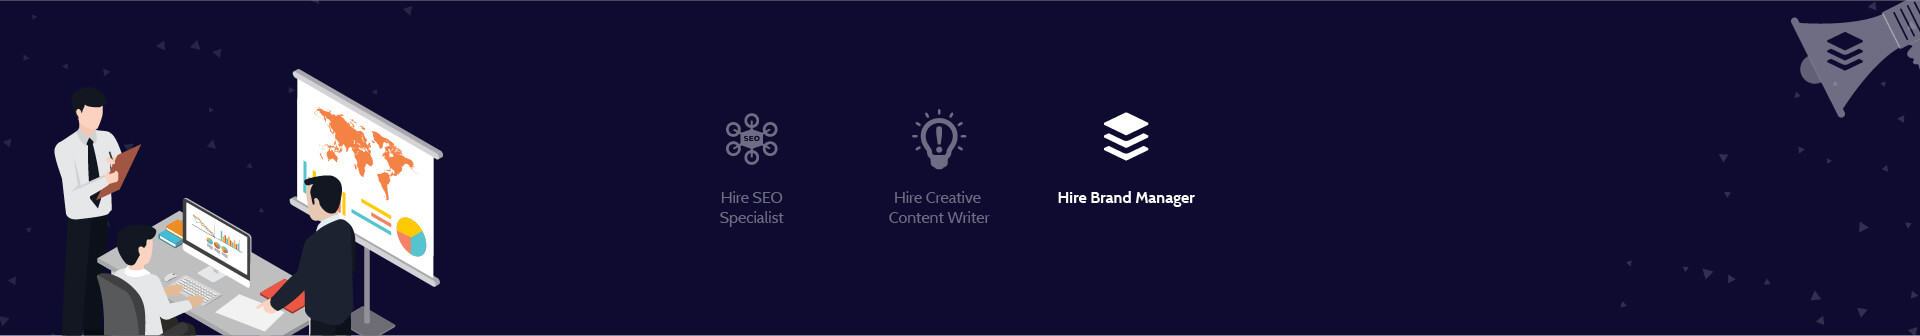 Hire Brand Manager